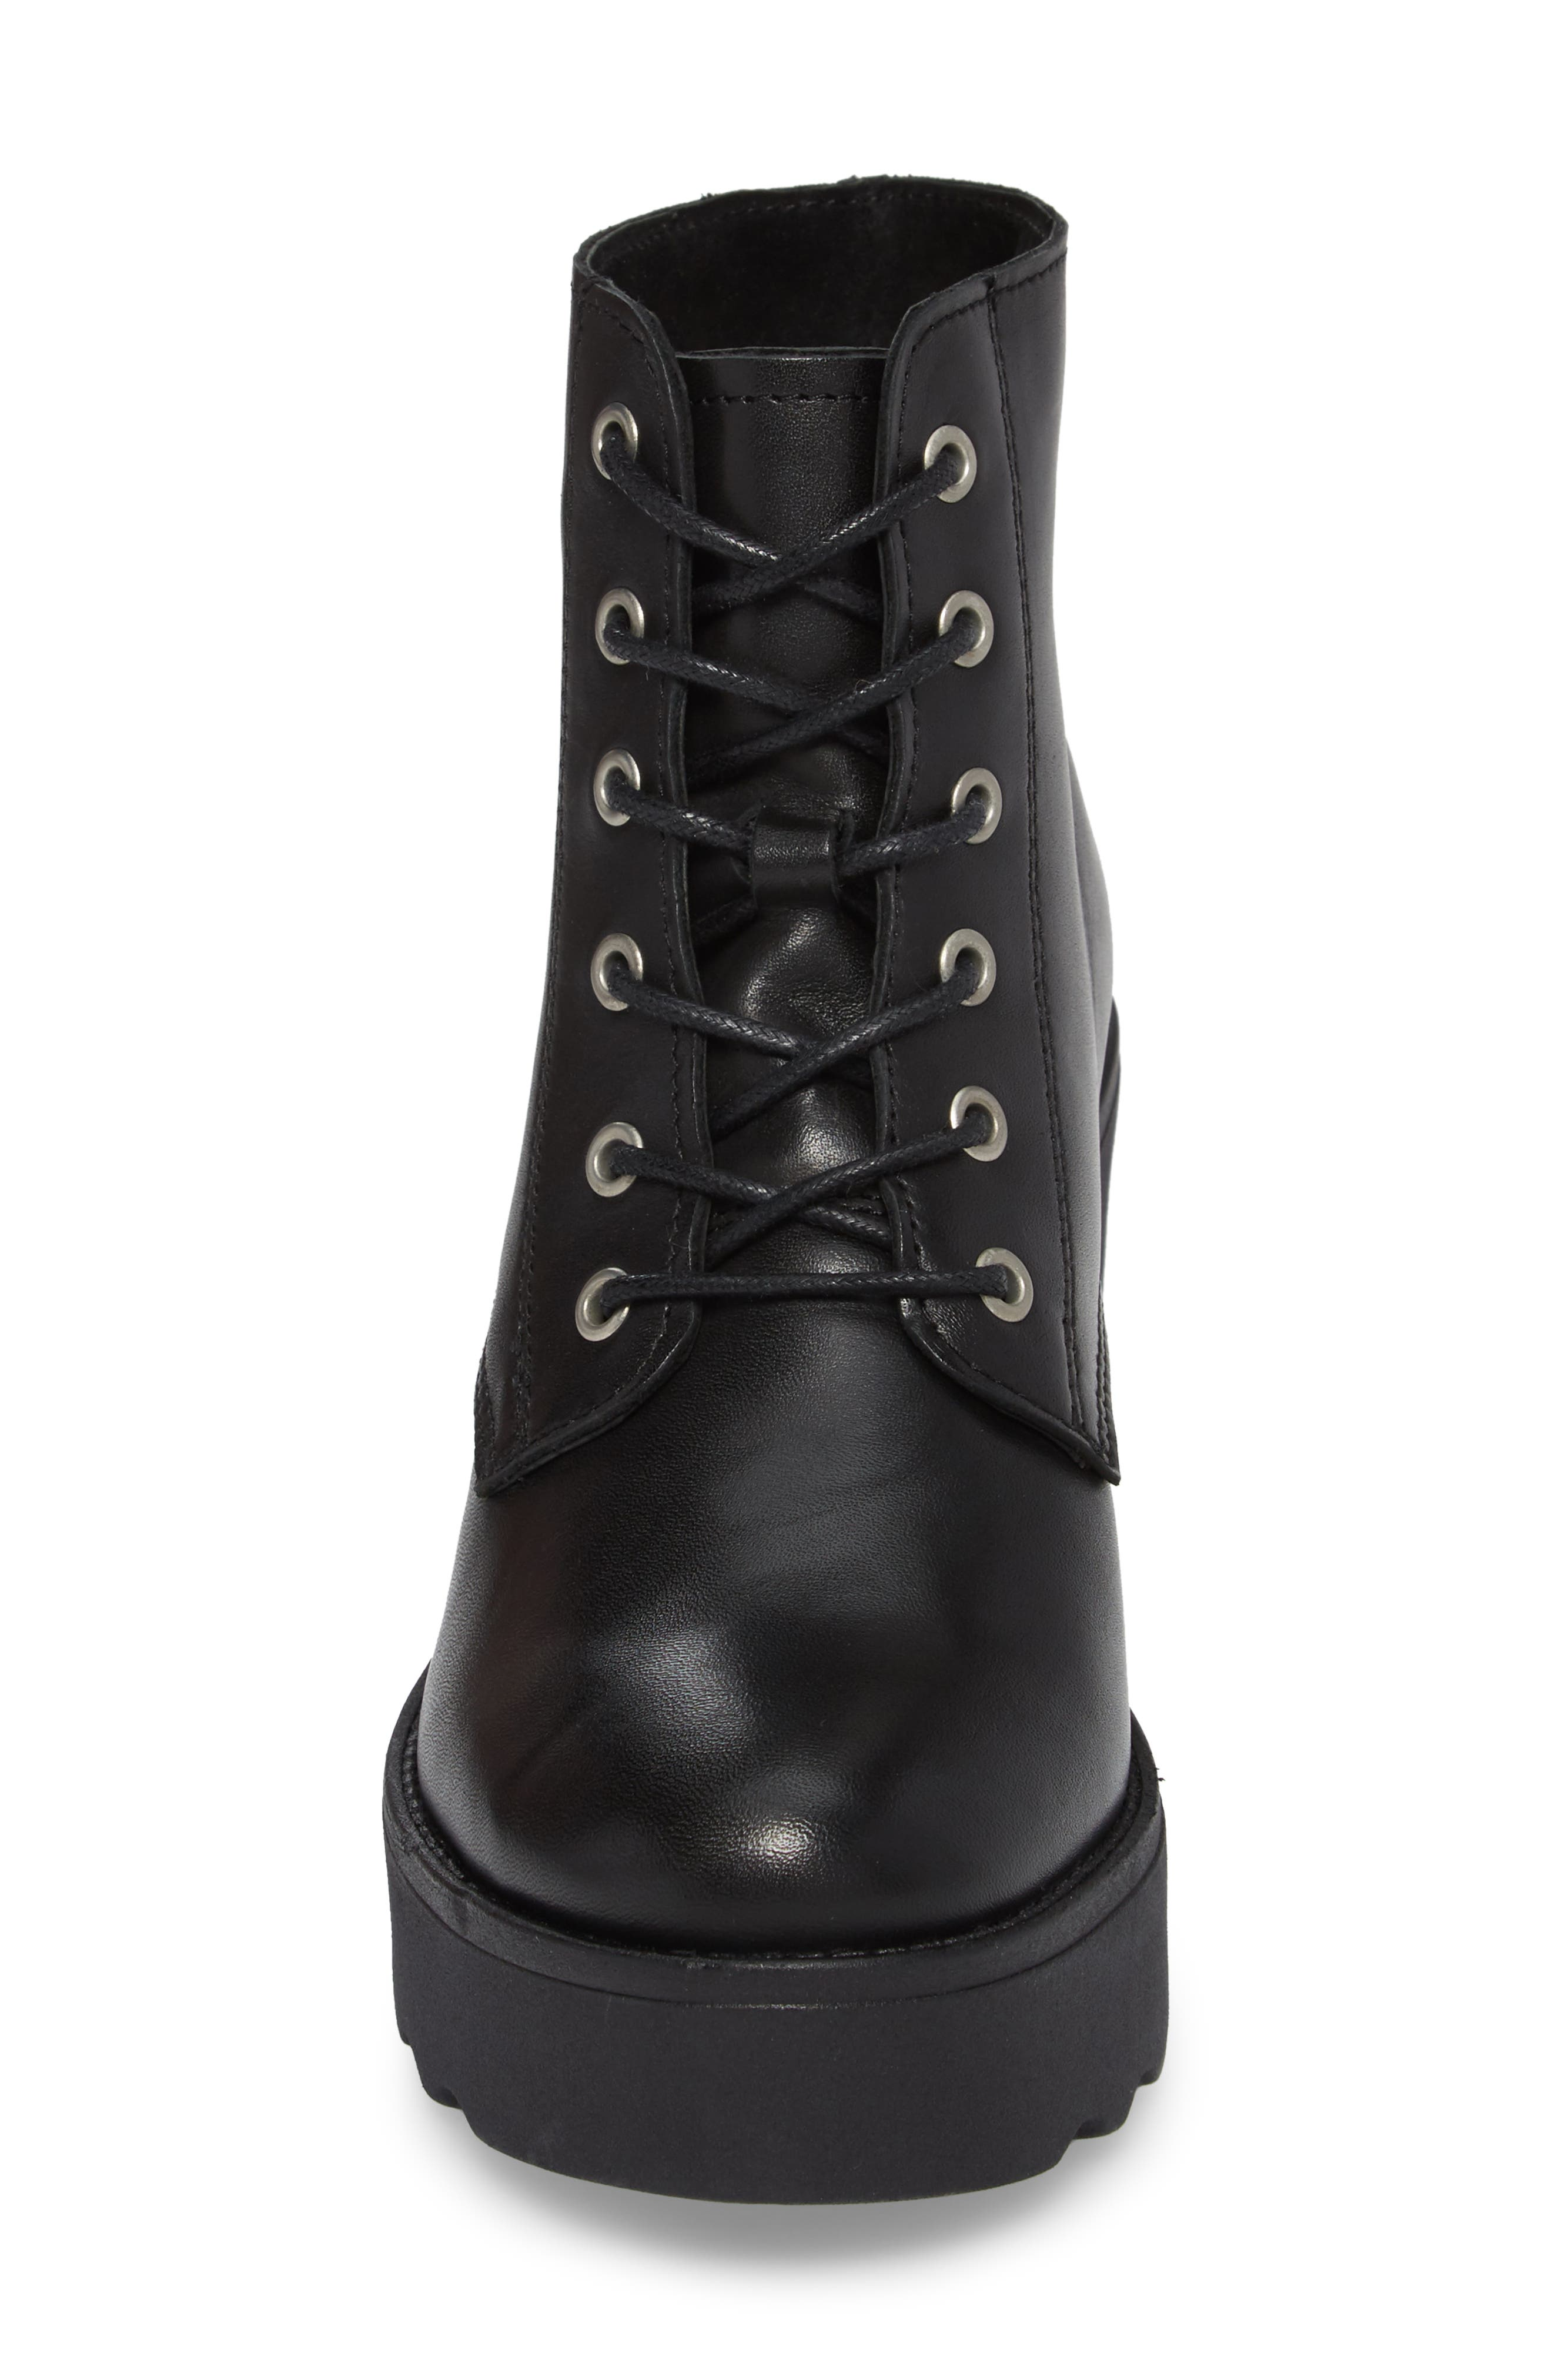 Gusto Boot,                             Alternate thumbnail 4, color,                             Black Leather